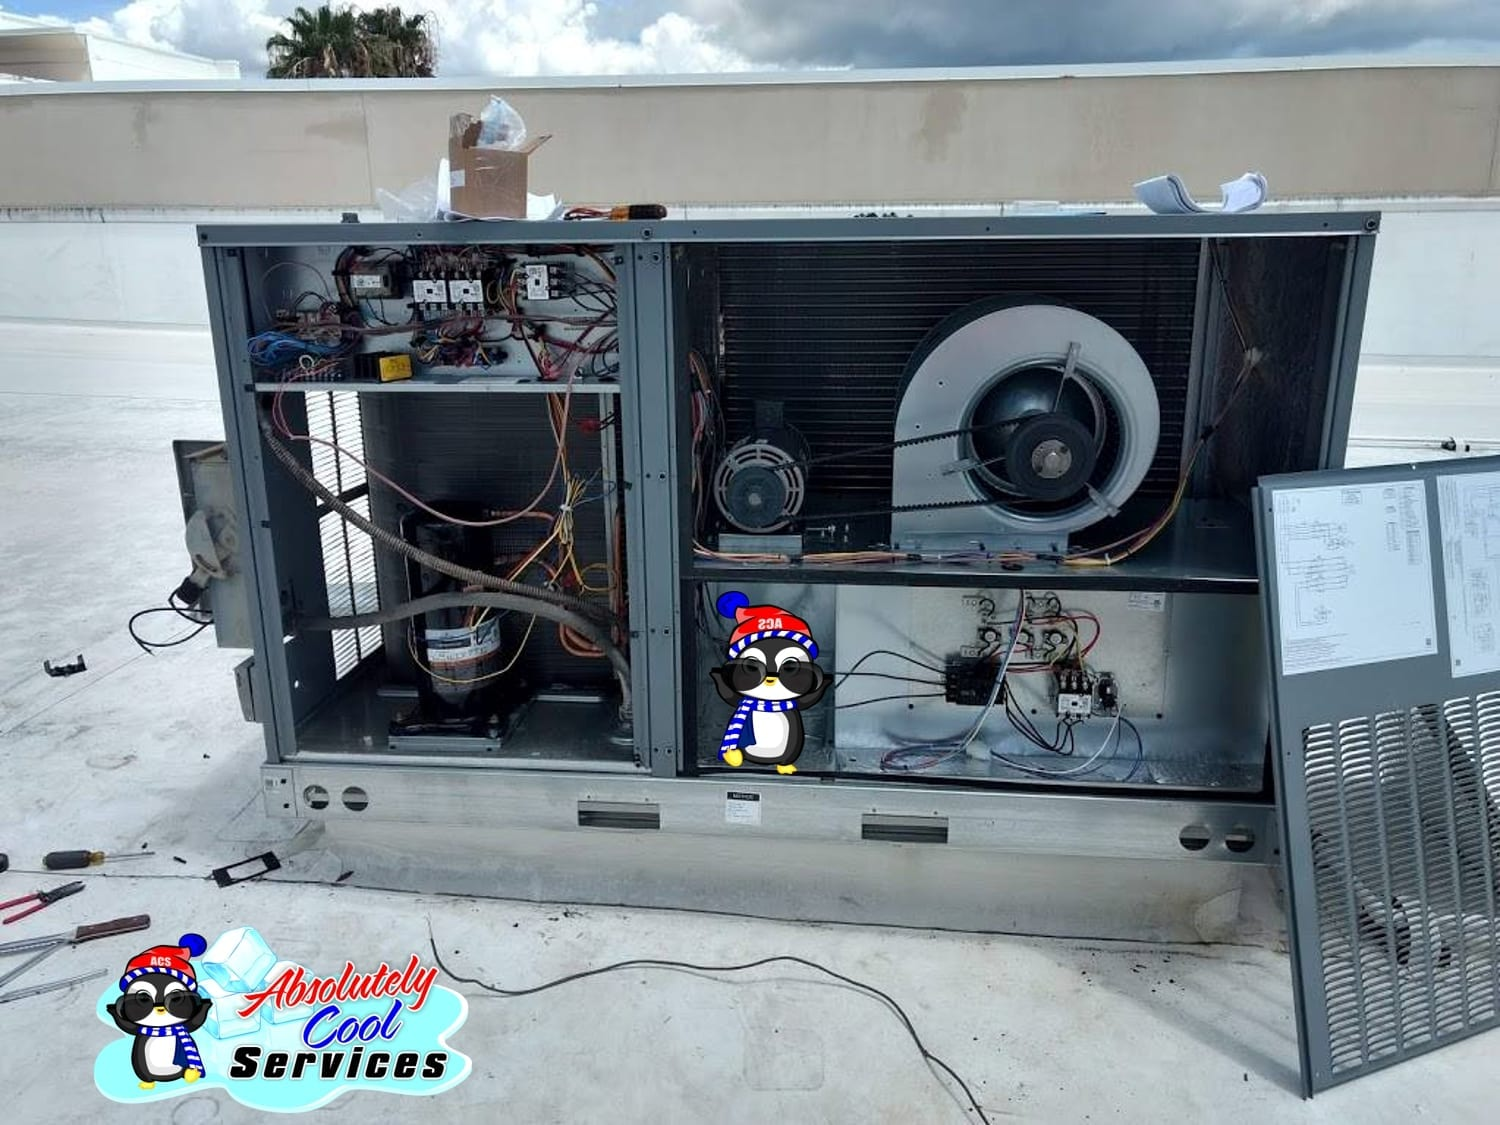 Roof Air Conditioning | Emergency Air Conditioning Repair Service near Royal Palm Beach